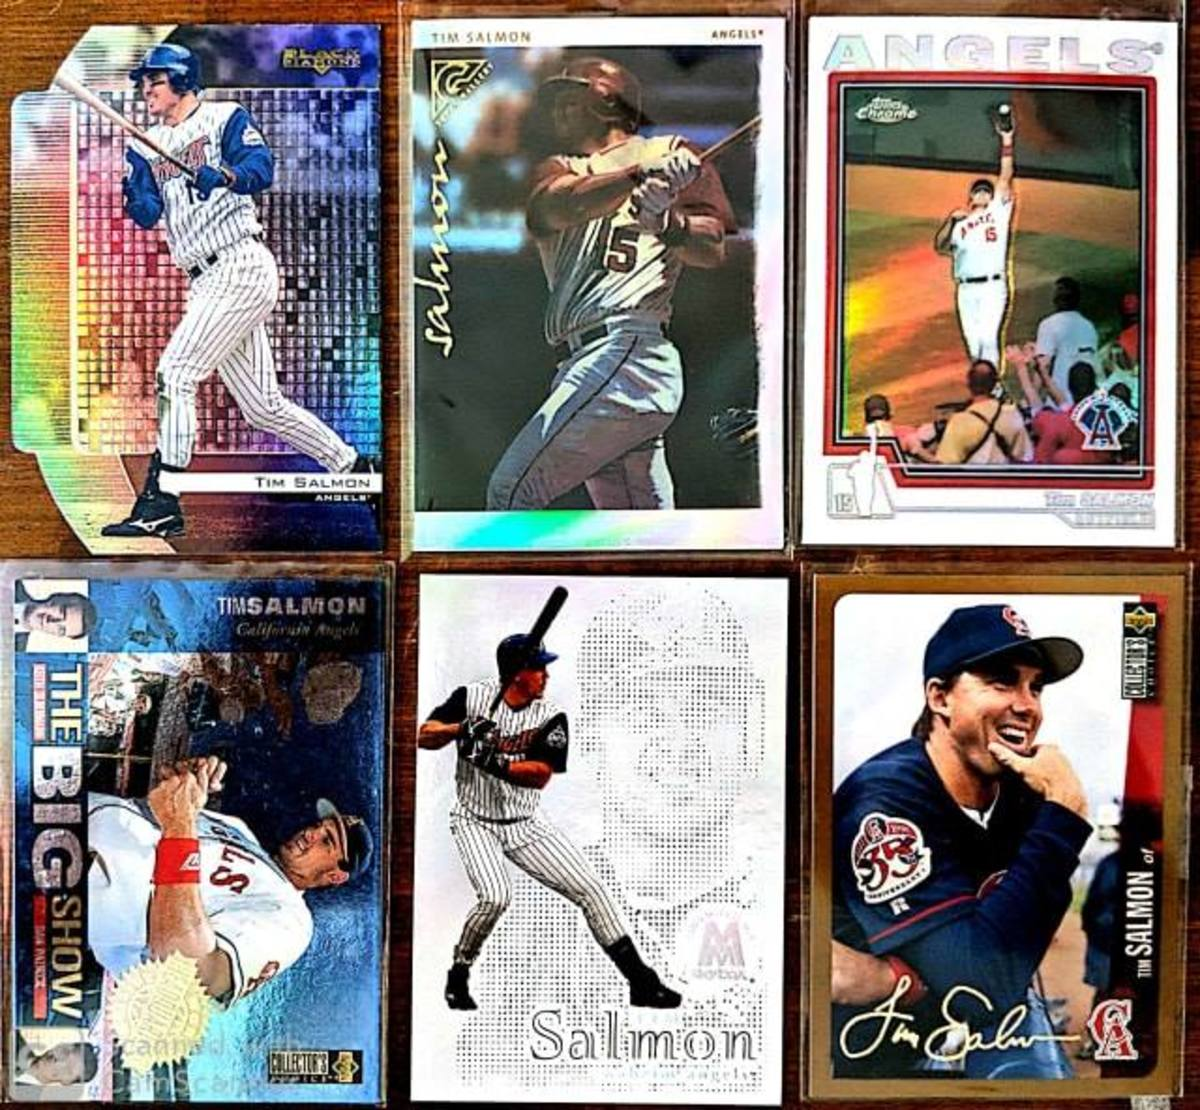 A sampling of cards included in my personal player collection of Tim Salmon.